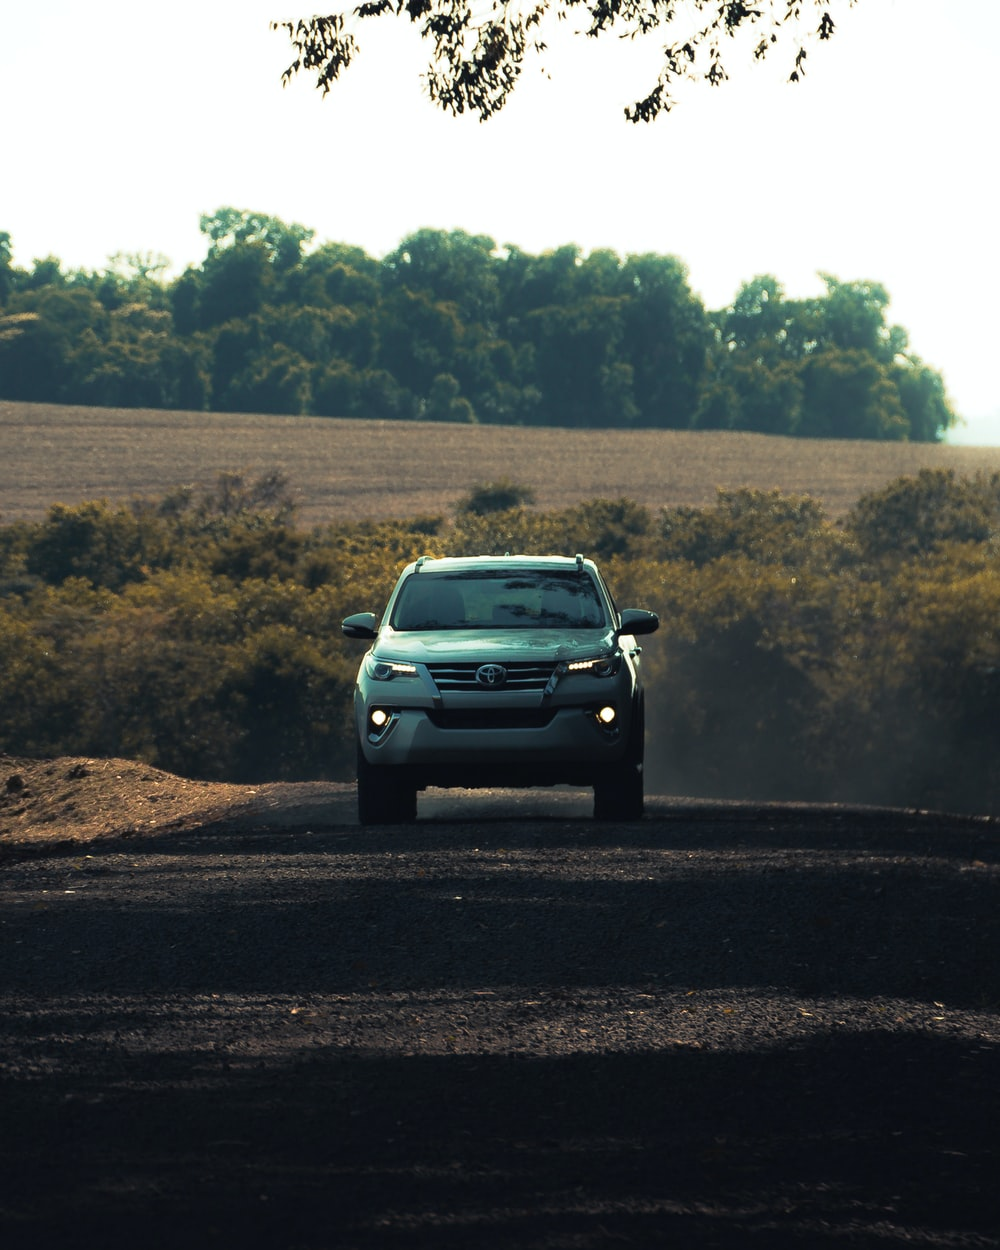 gray car on dirt road during daytime